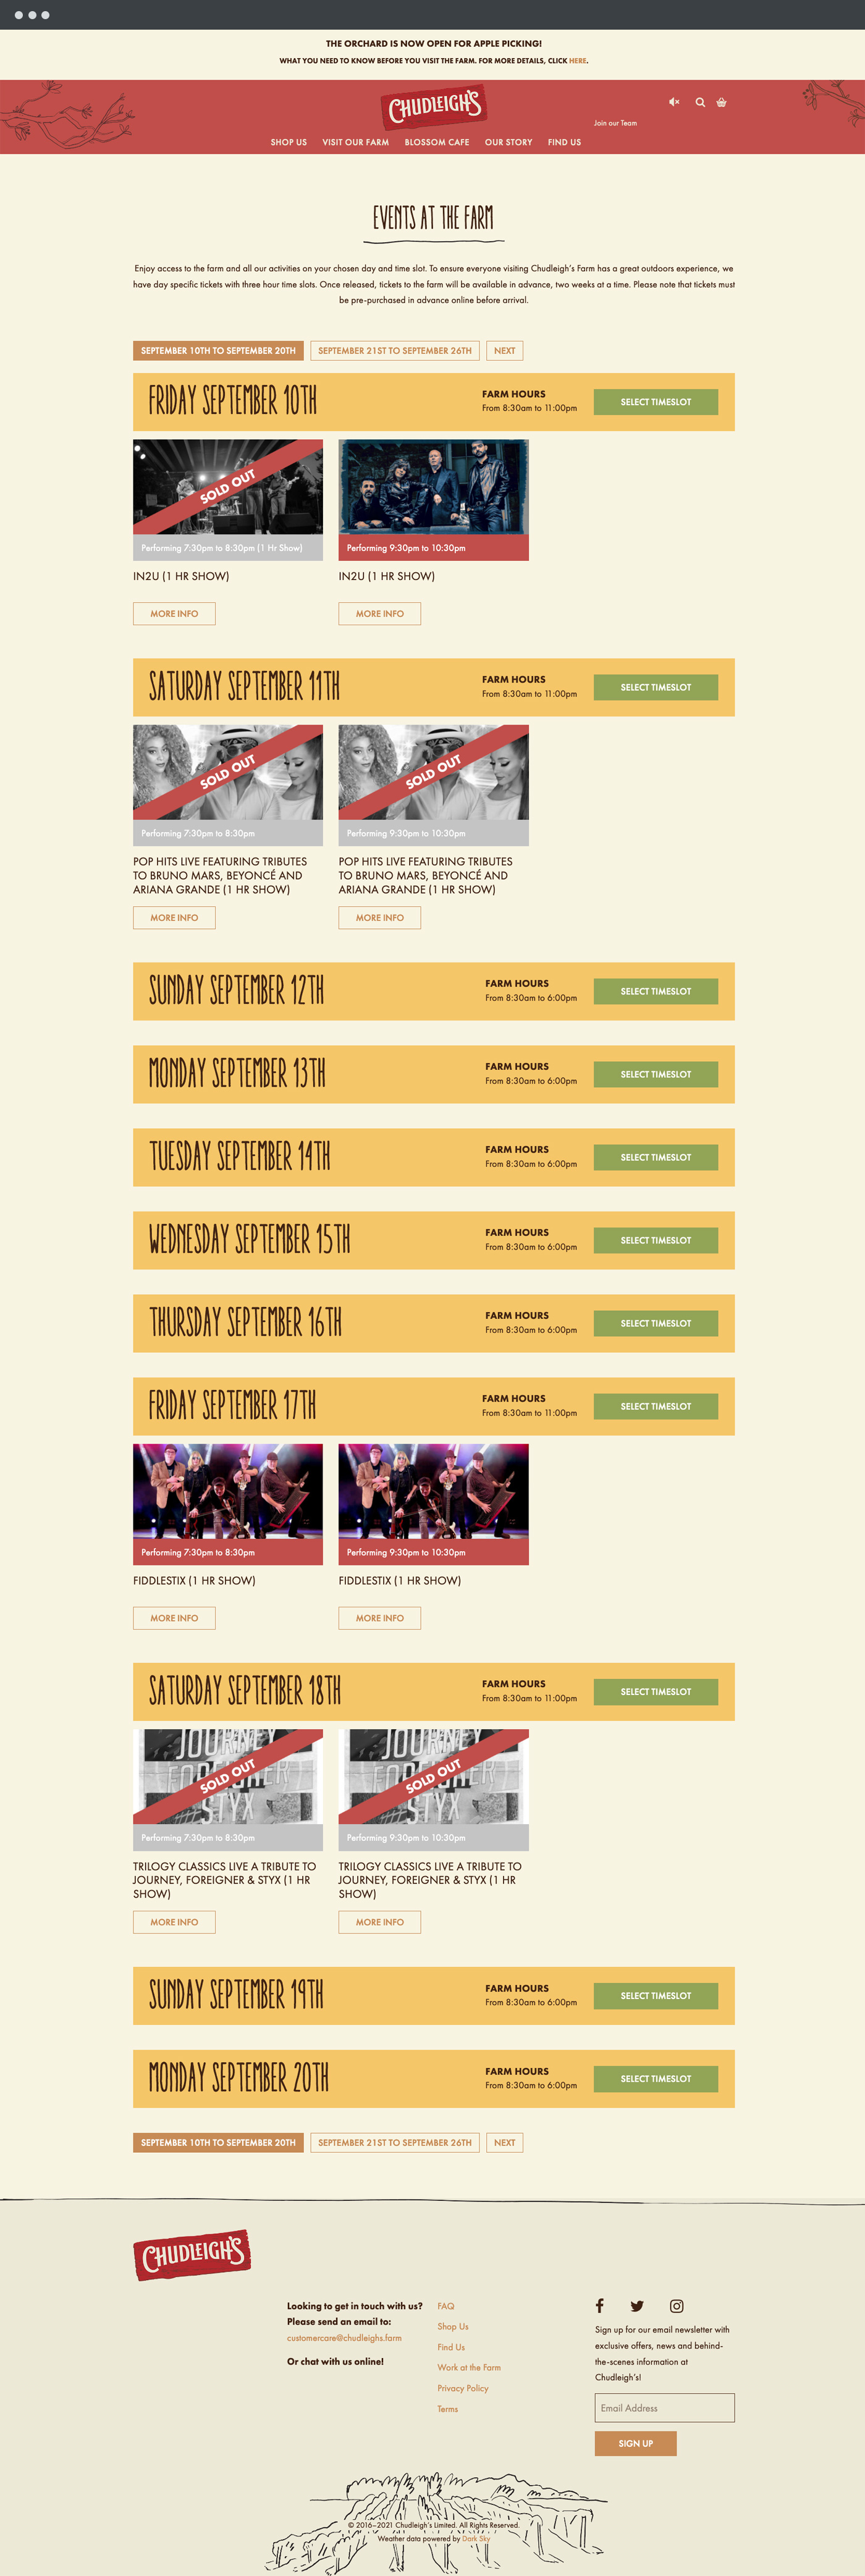 Chudleigh's farm event page design